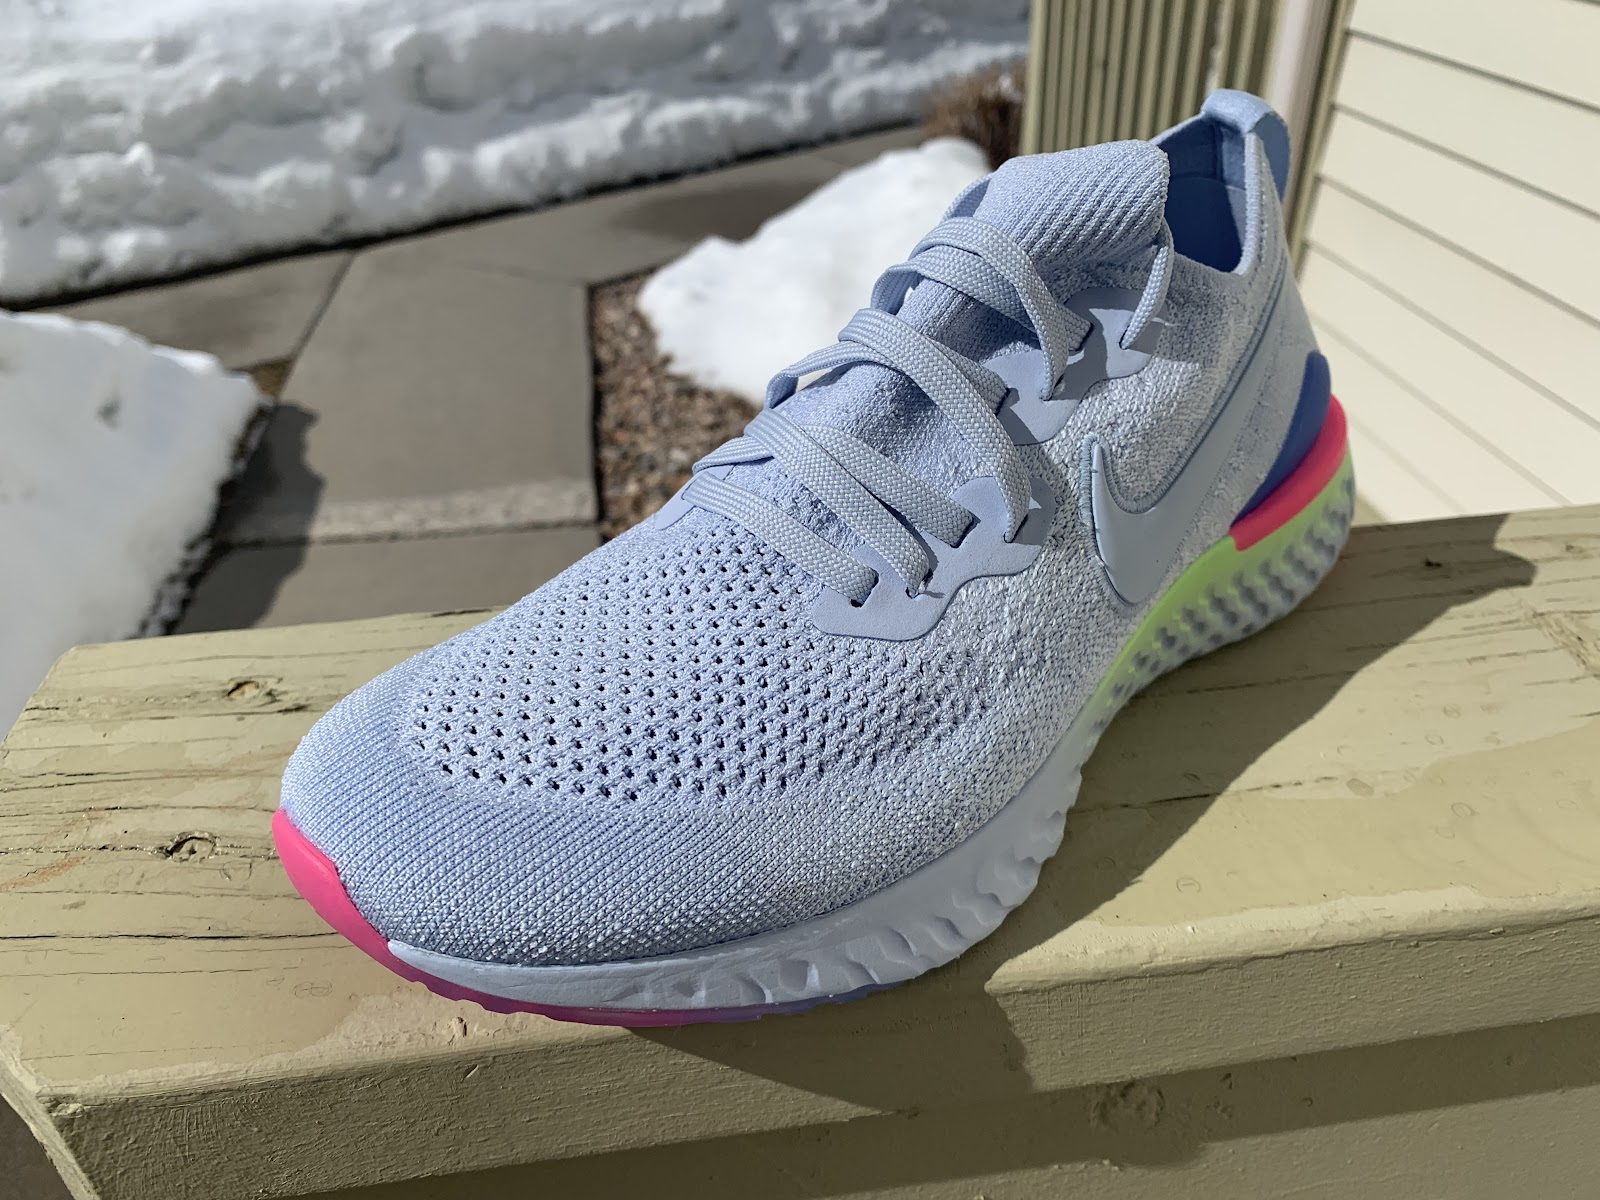 título región Funeral  Road Trail Run: Nike Epic React Flyknit 2 Review: A Subtle yet Significant  Update